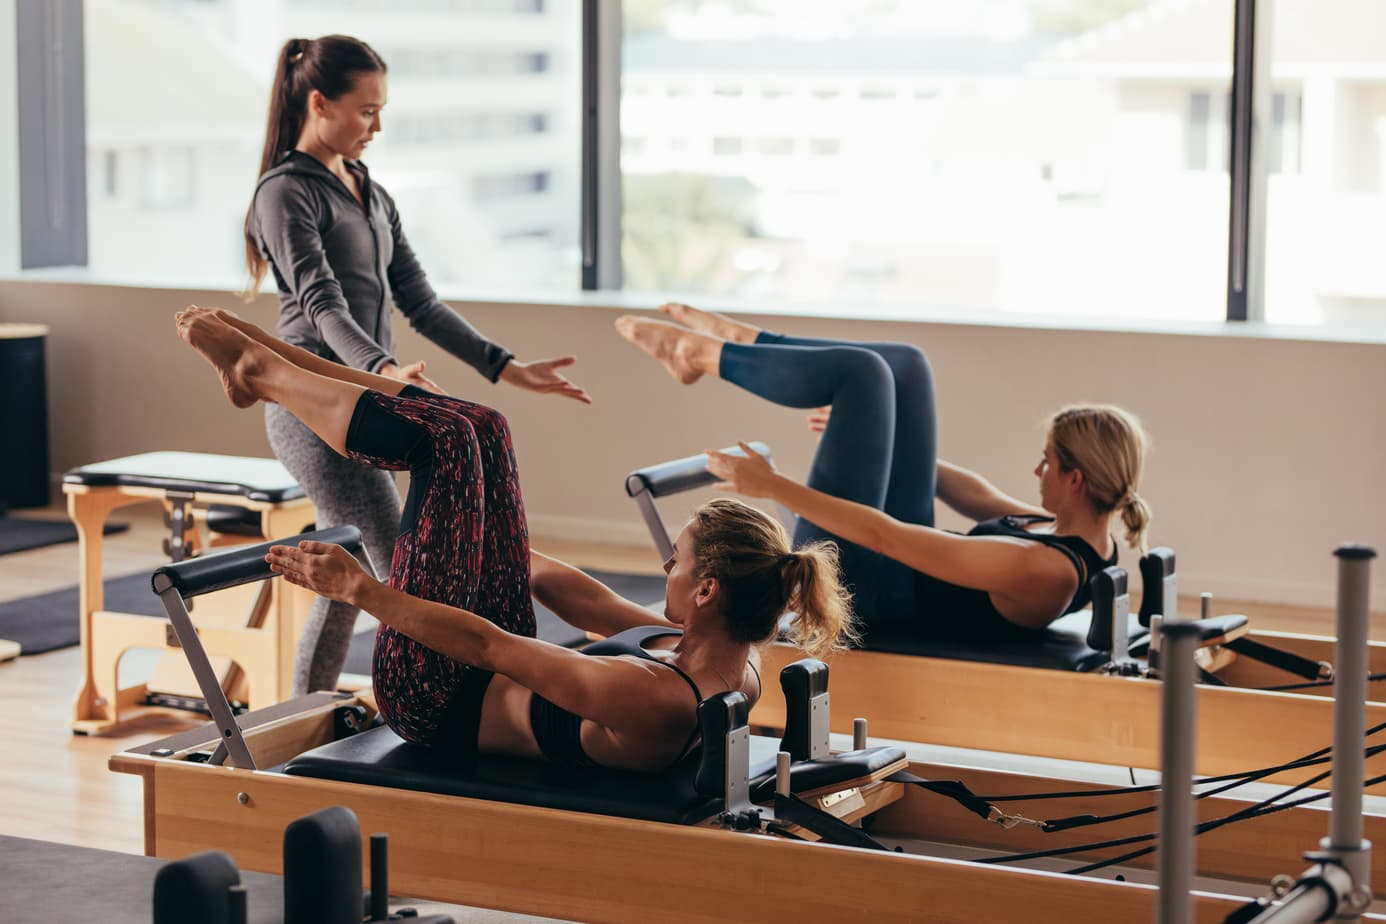 Semi-Private Pilates HACKENSACK UMC FITNESS & WELLNESS POWERED BY THE GIANTS